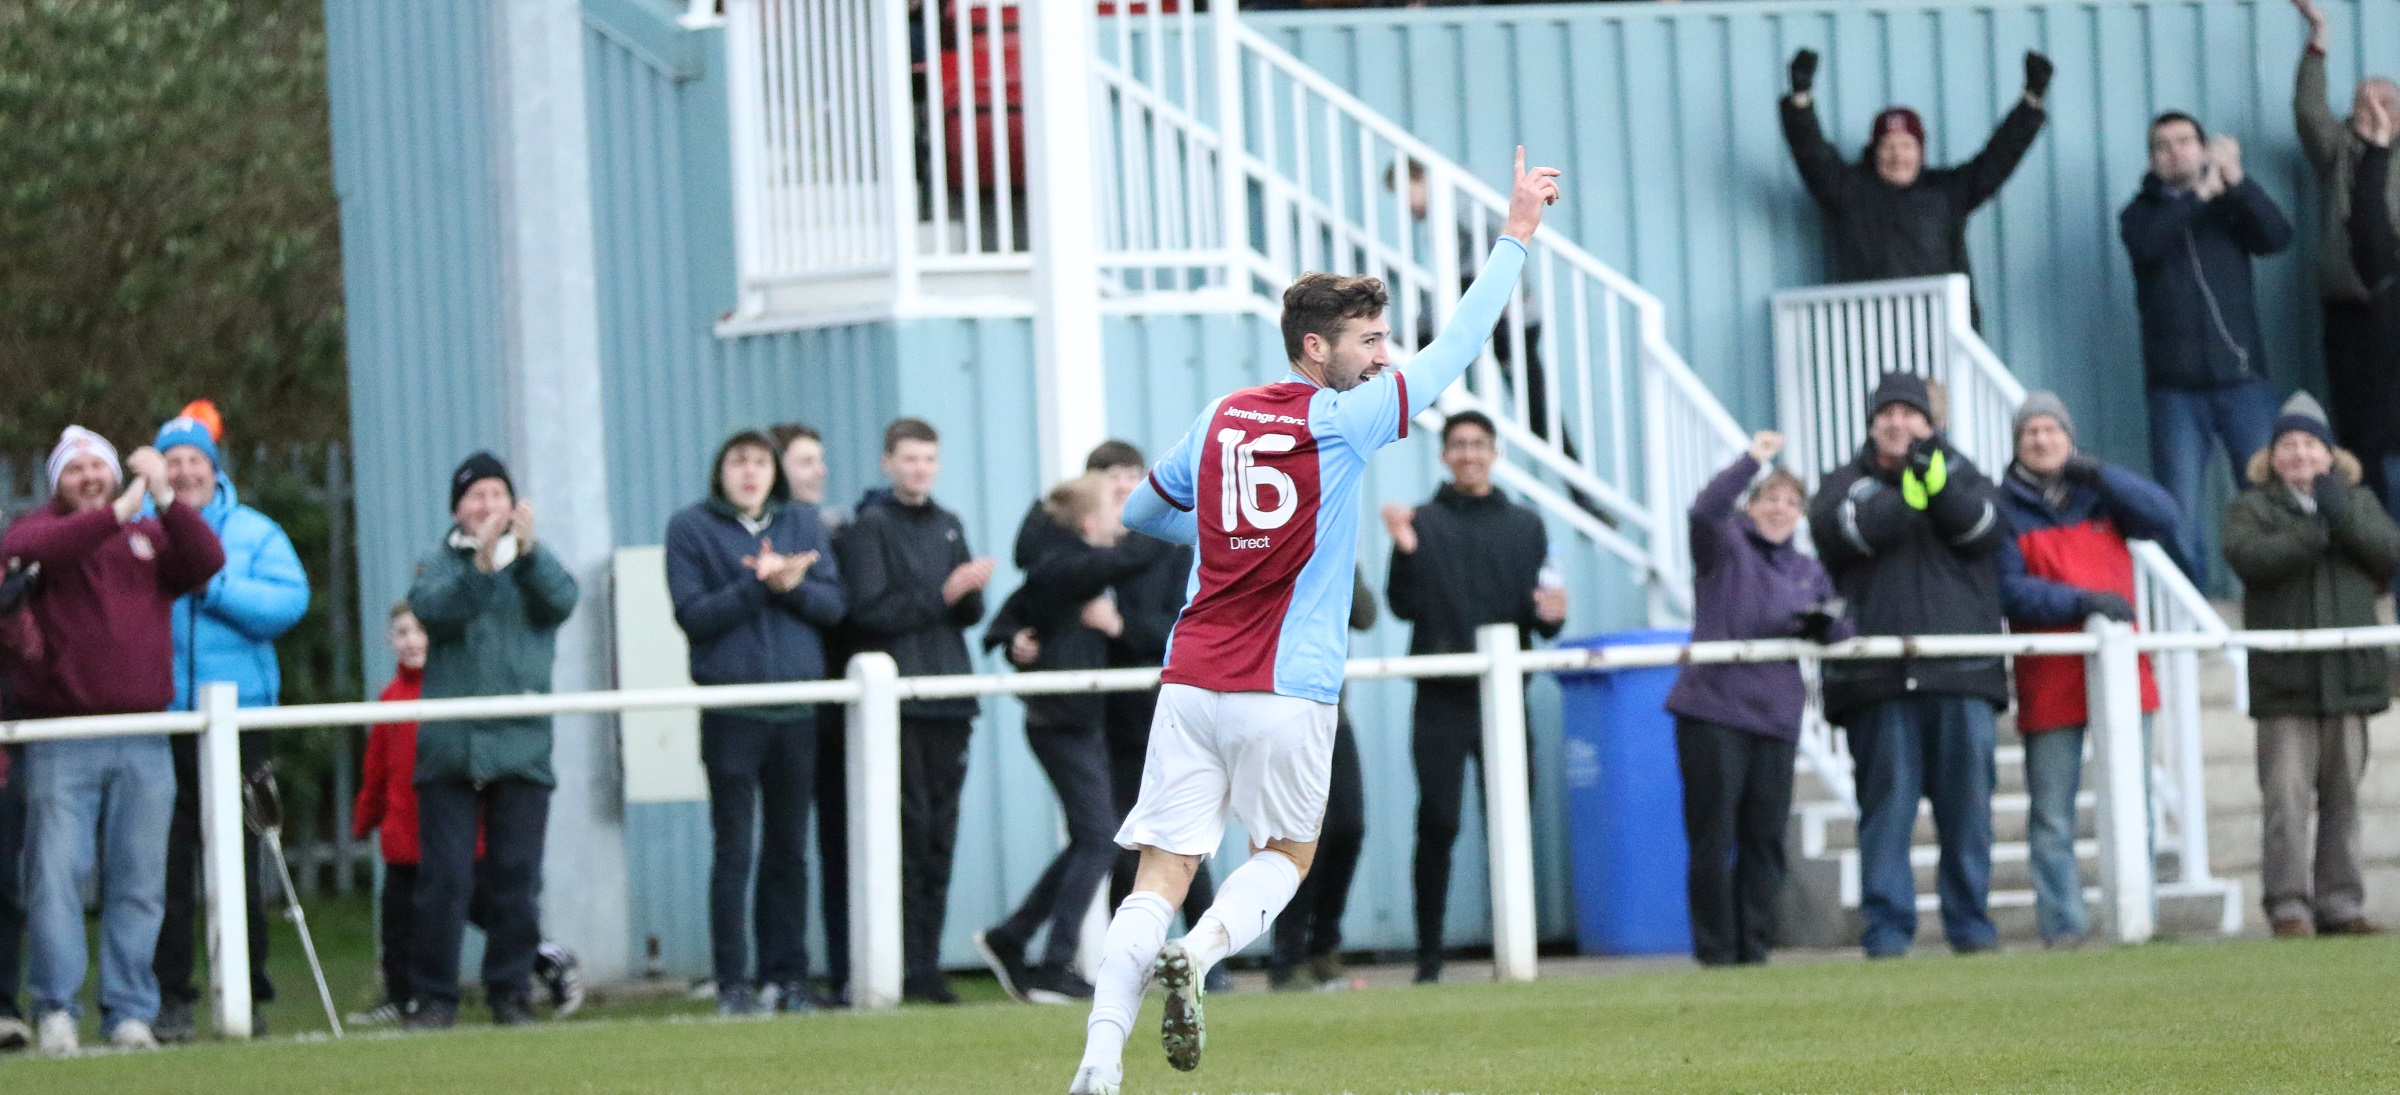 South Shields 2-0 Shildon: Huge win breaks club record